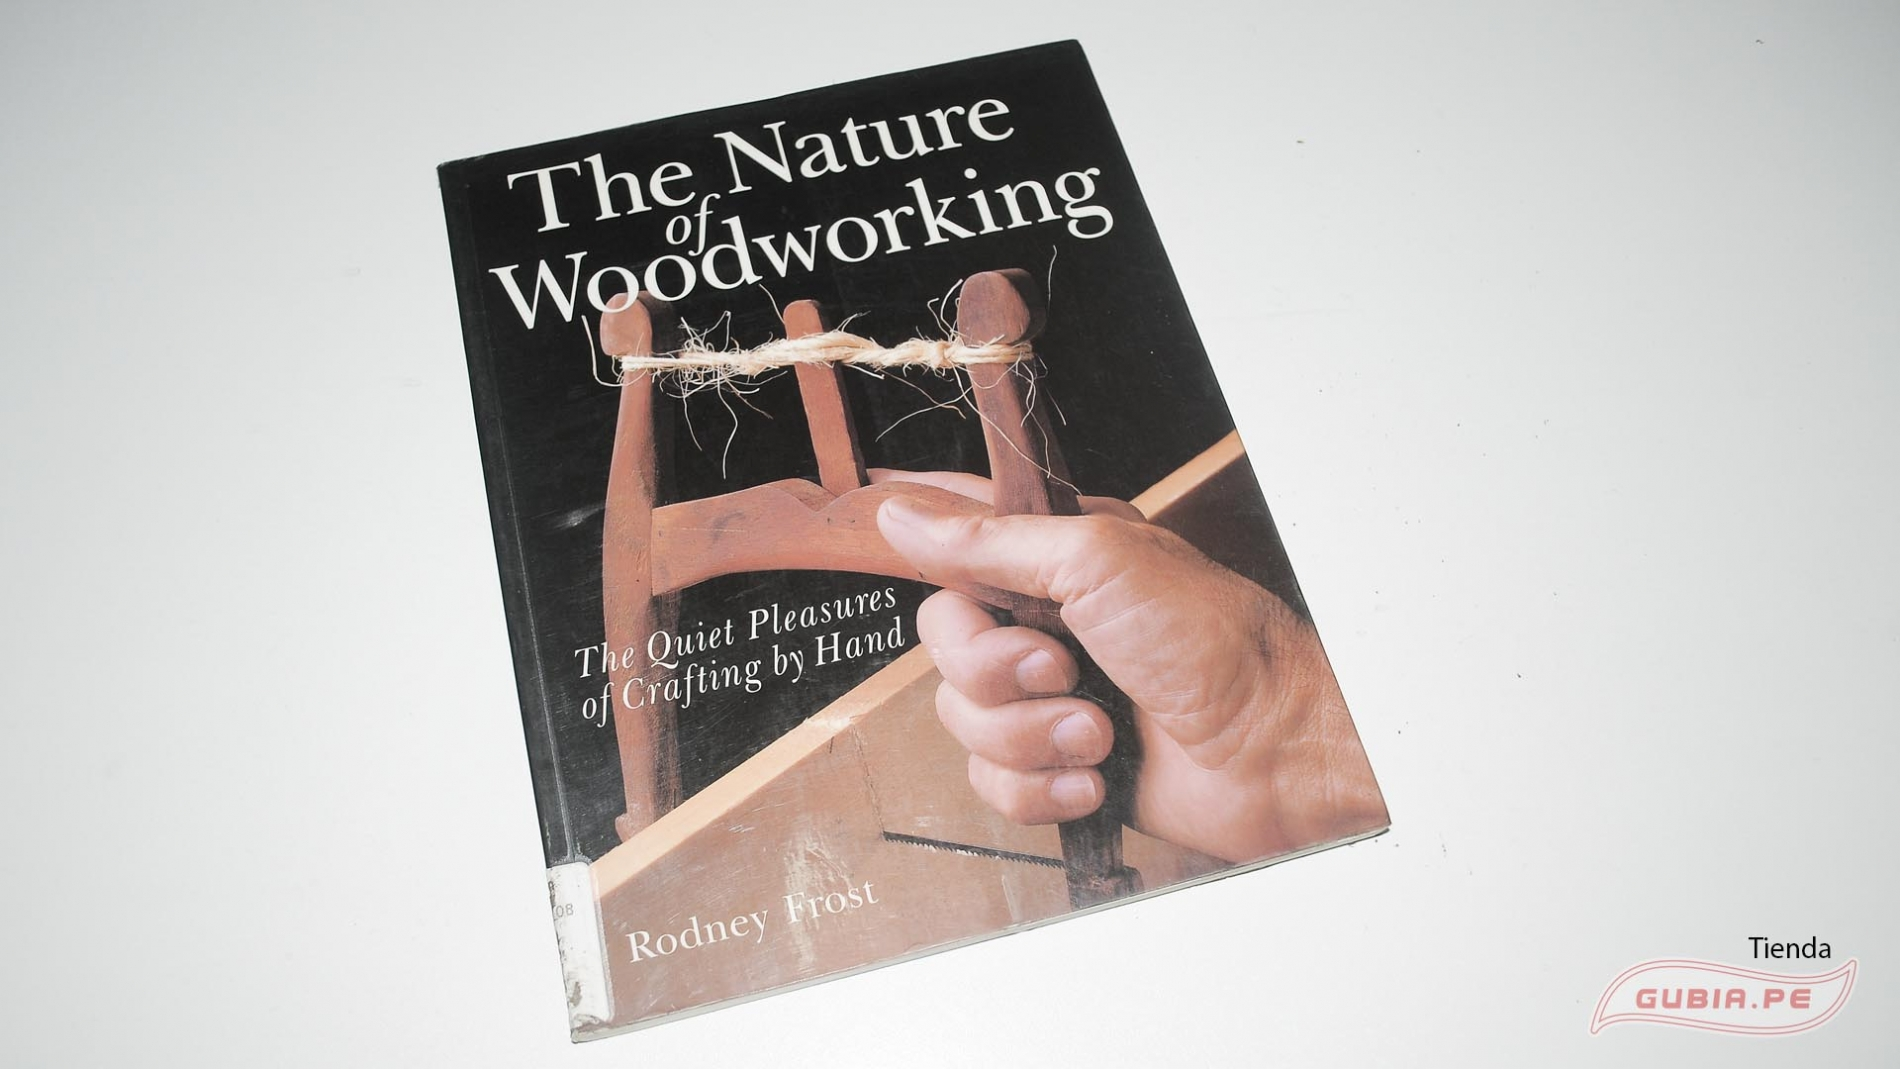 GUB0069-Libro de ebanisteria en ingles : The Nature of Woodworking : The Quiet Pleasures of Crafting by Hand-max-1.